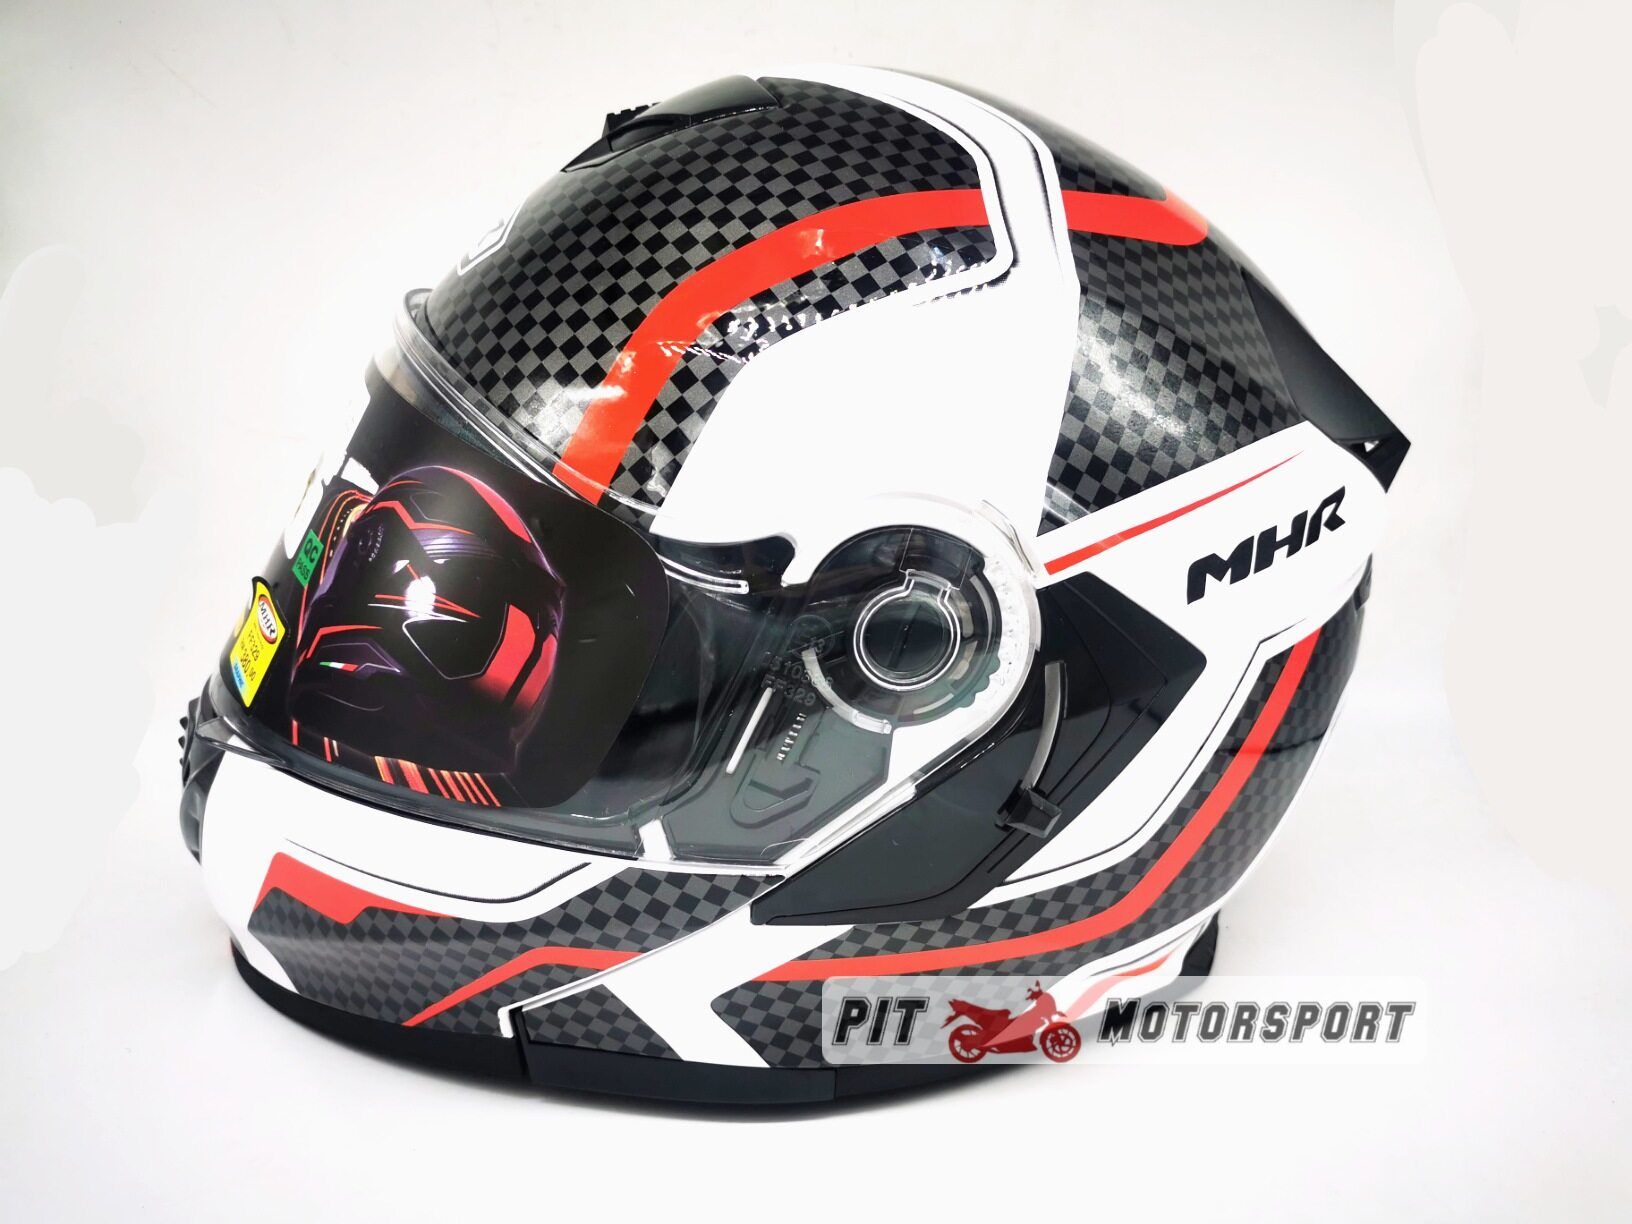 MHR Full Face Flip Up Double Visor Helmet New Design FF329 GT4 GP RACING Red Protect Protection Motor Accessories Merah